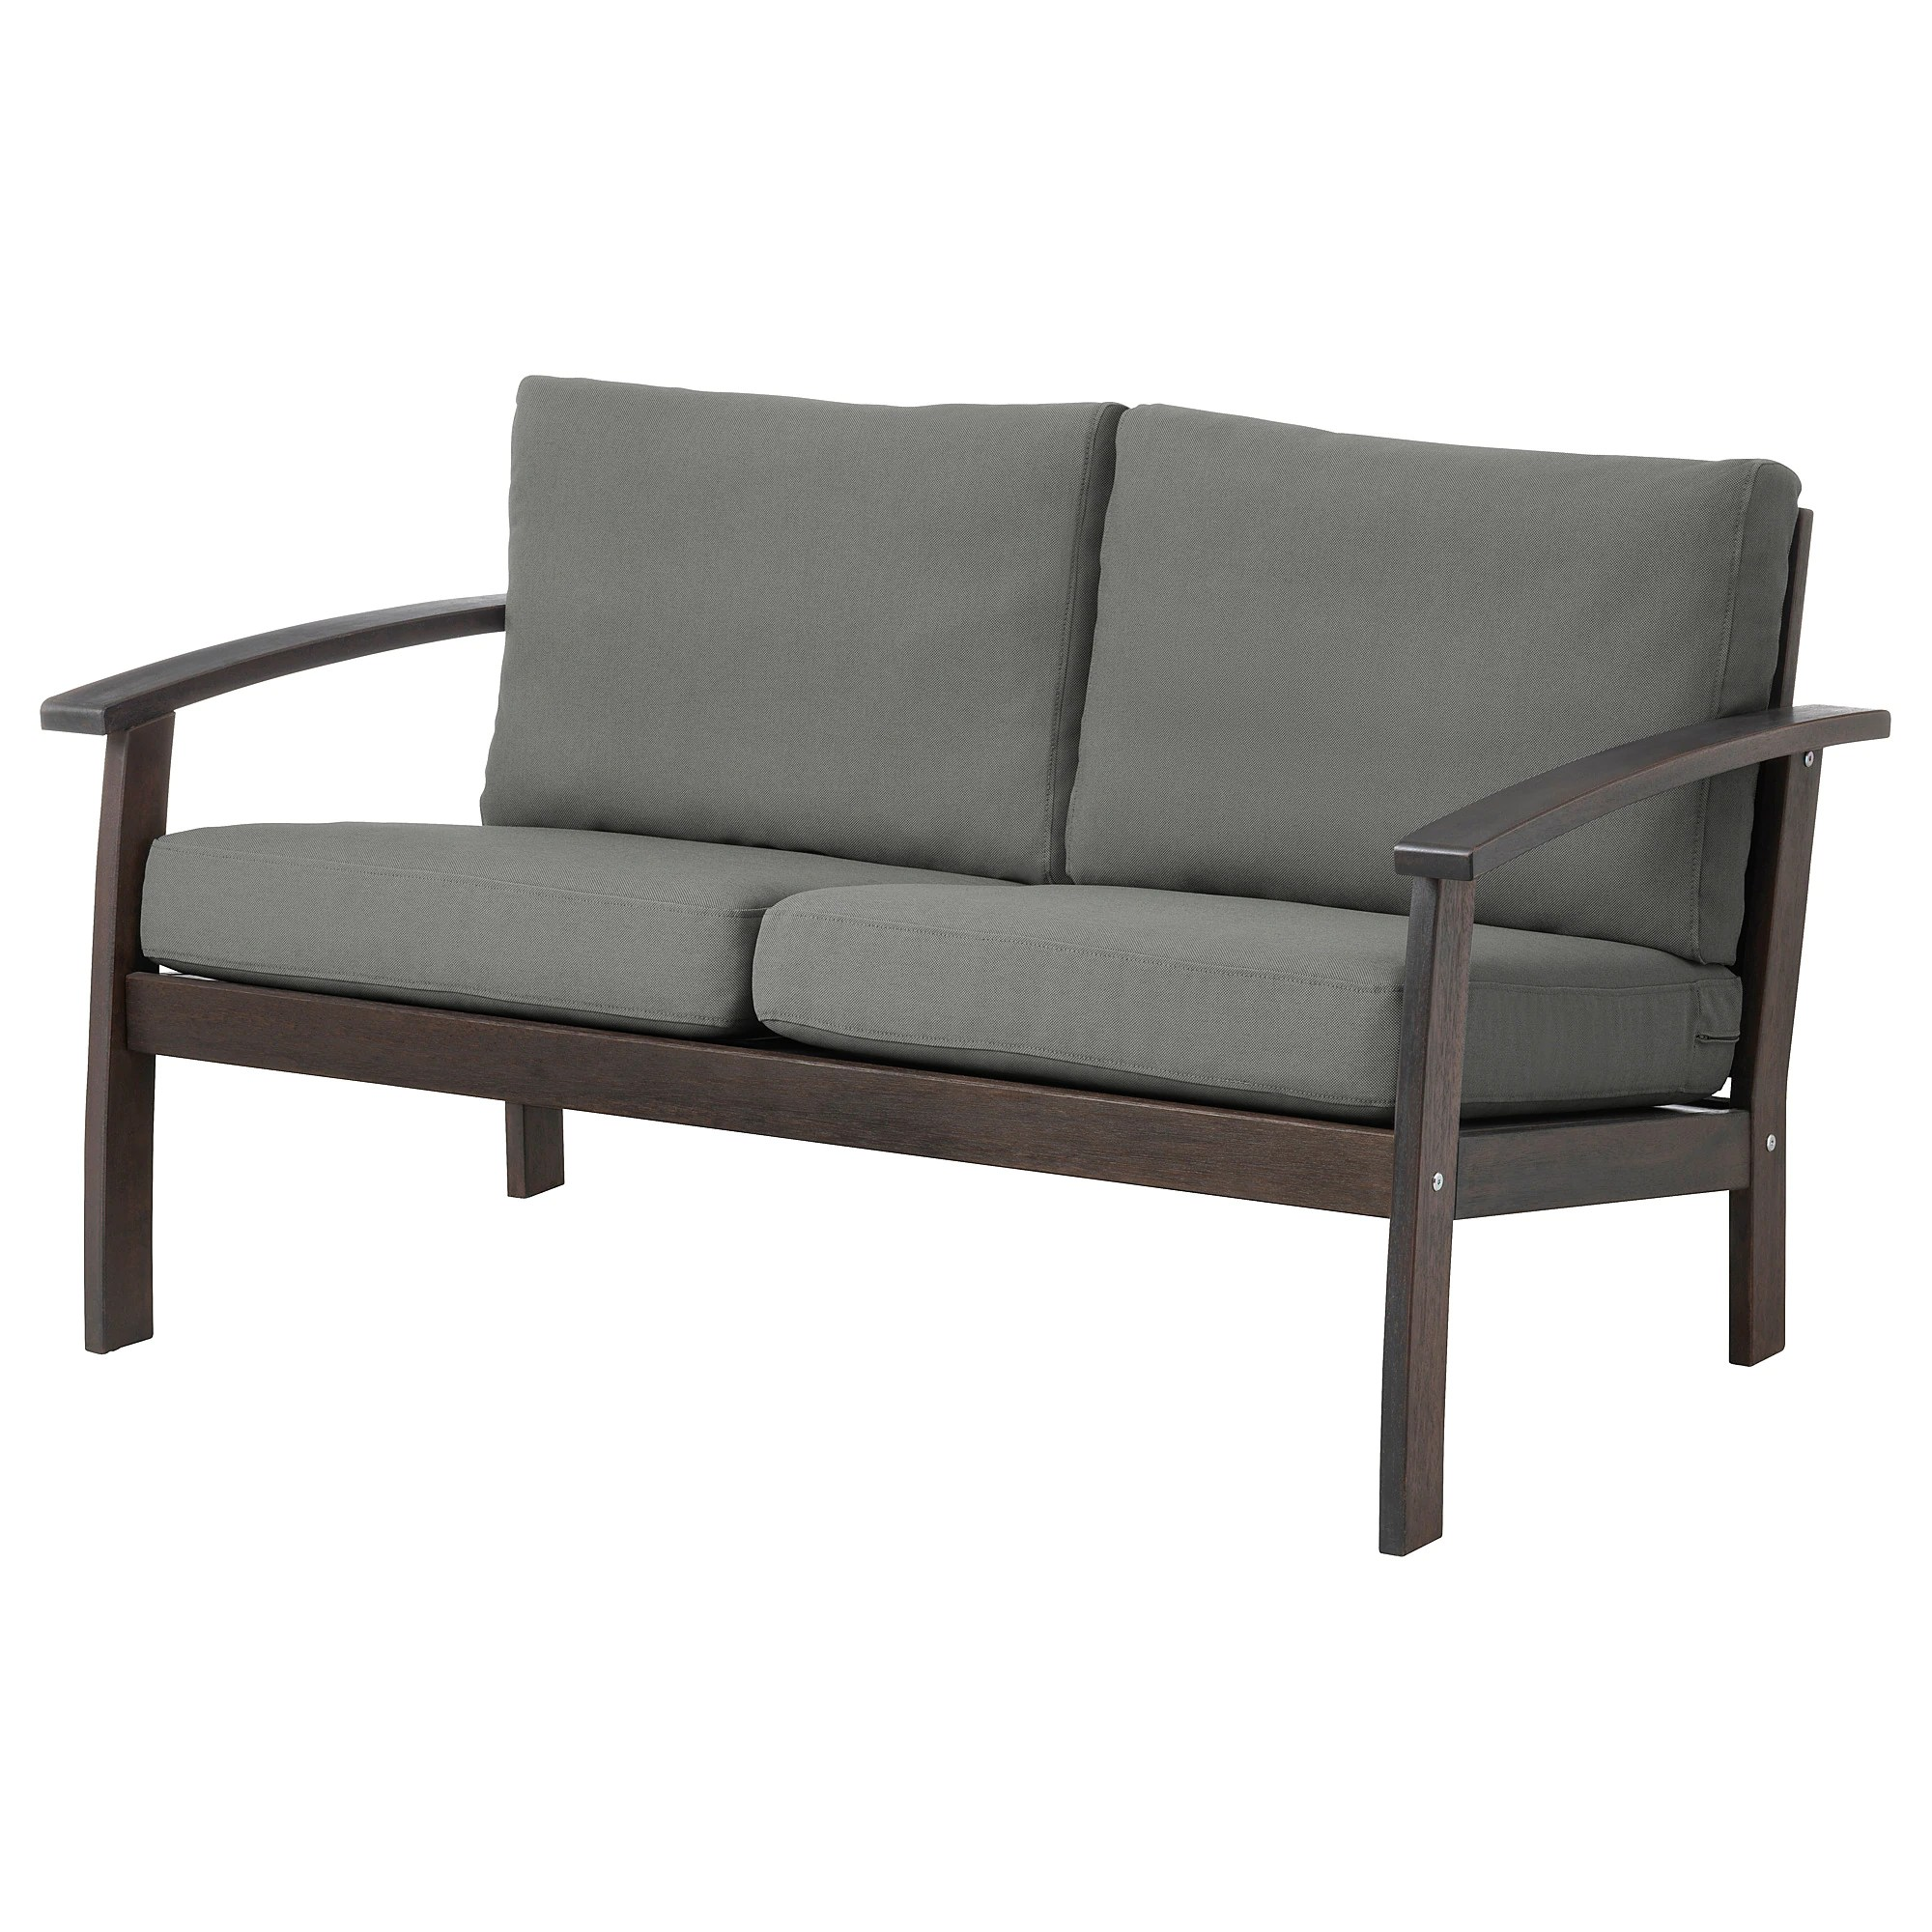 Ikea Loveseat KlÖven Loveseat Outdoor Brown Stained Frösön Duvholmen Dark Gray